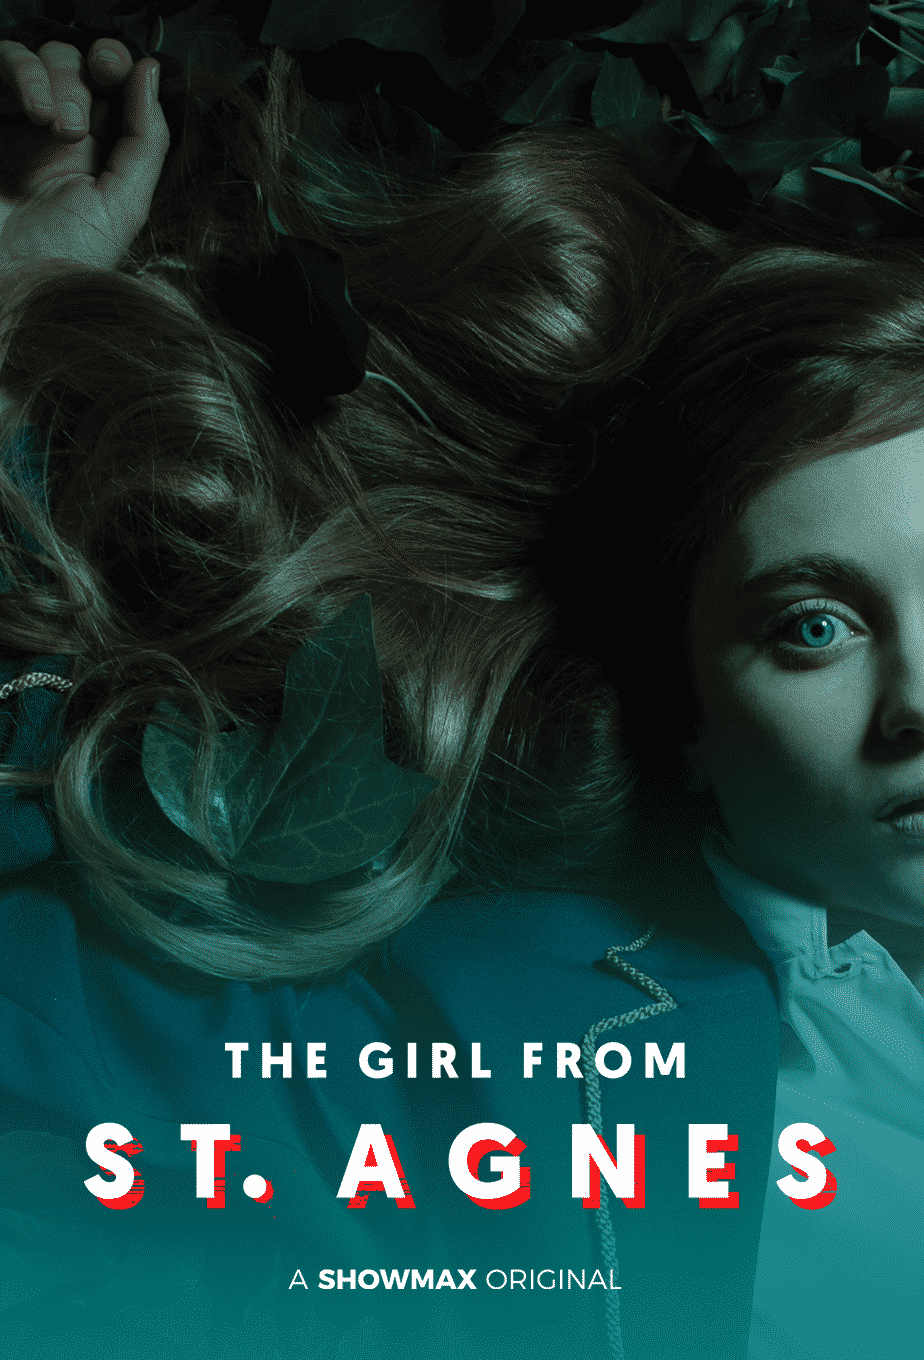 The Girl From St. Agnes Is South Africa's Own Gone Girl